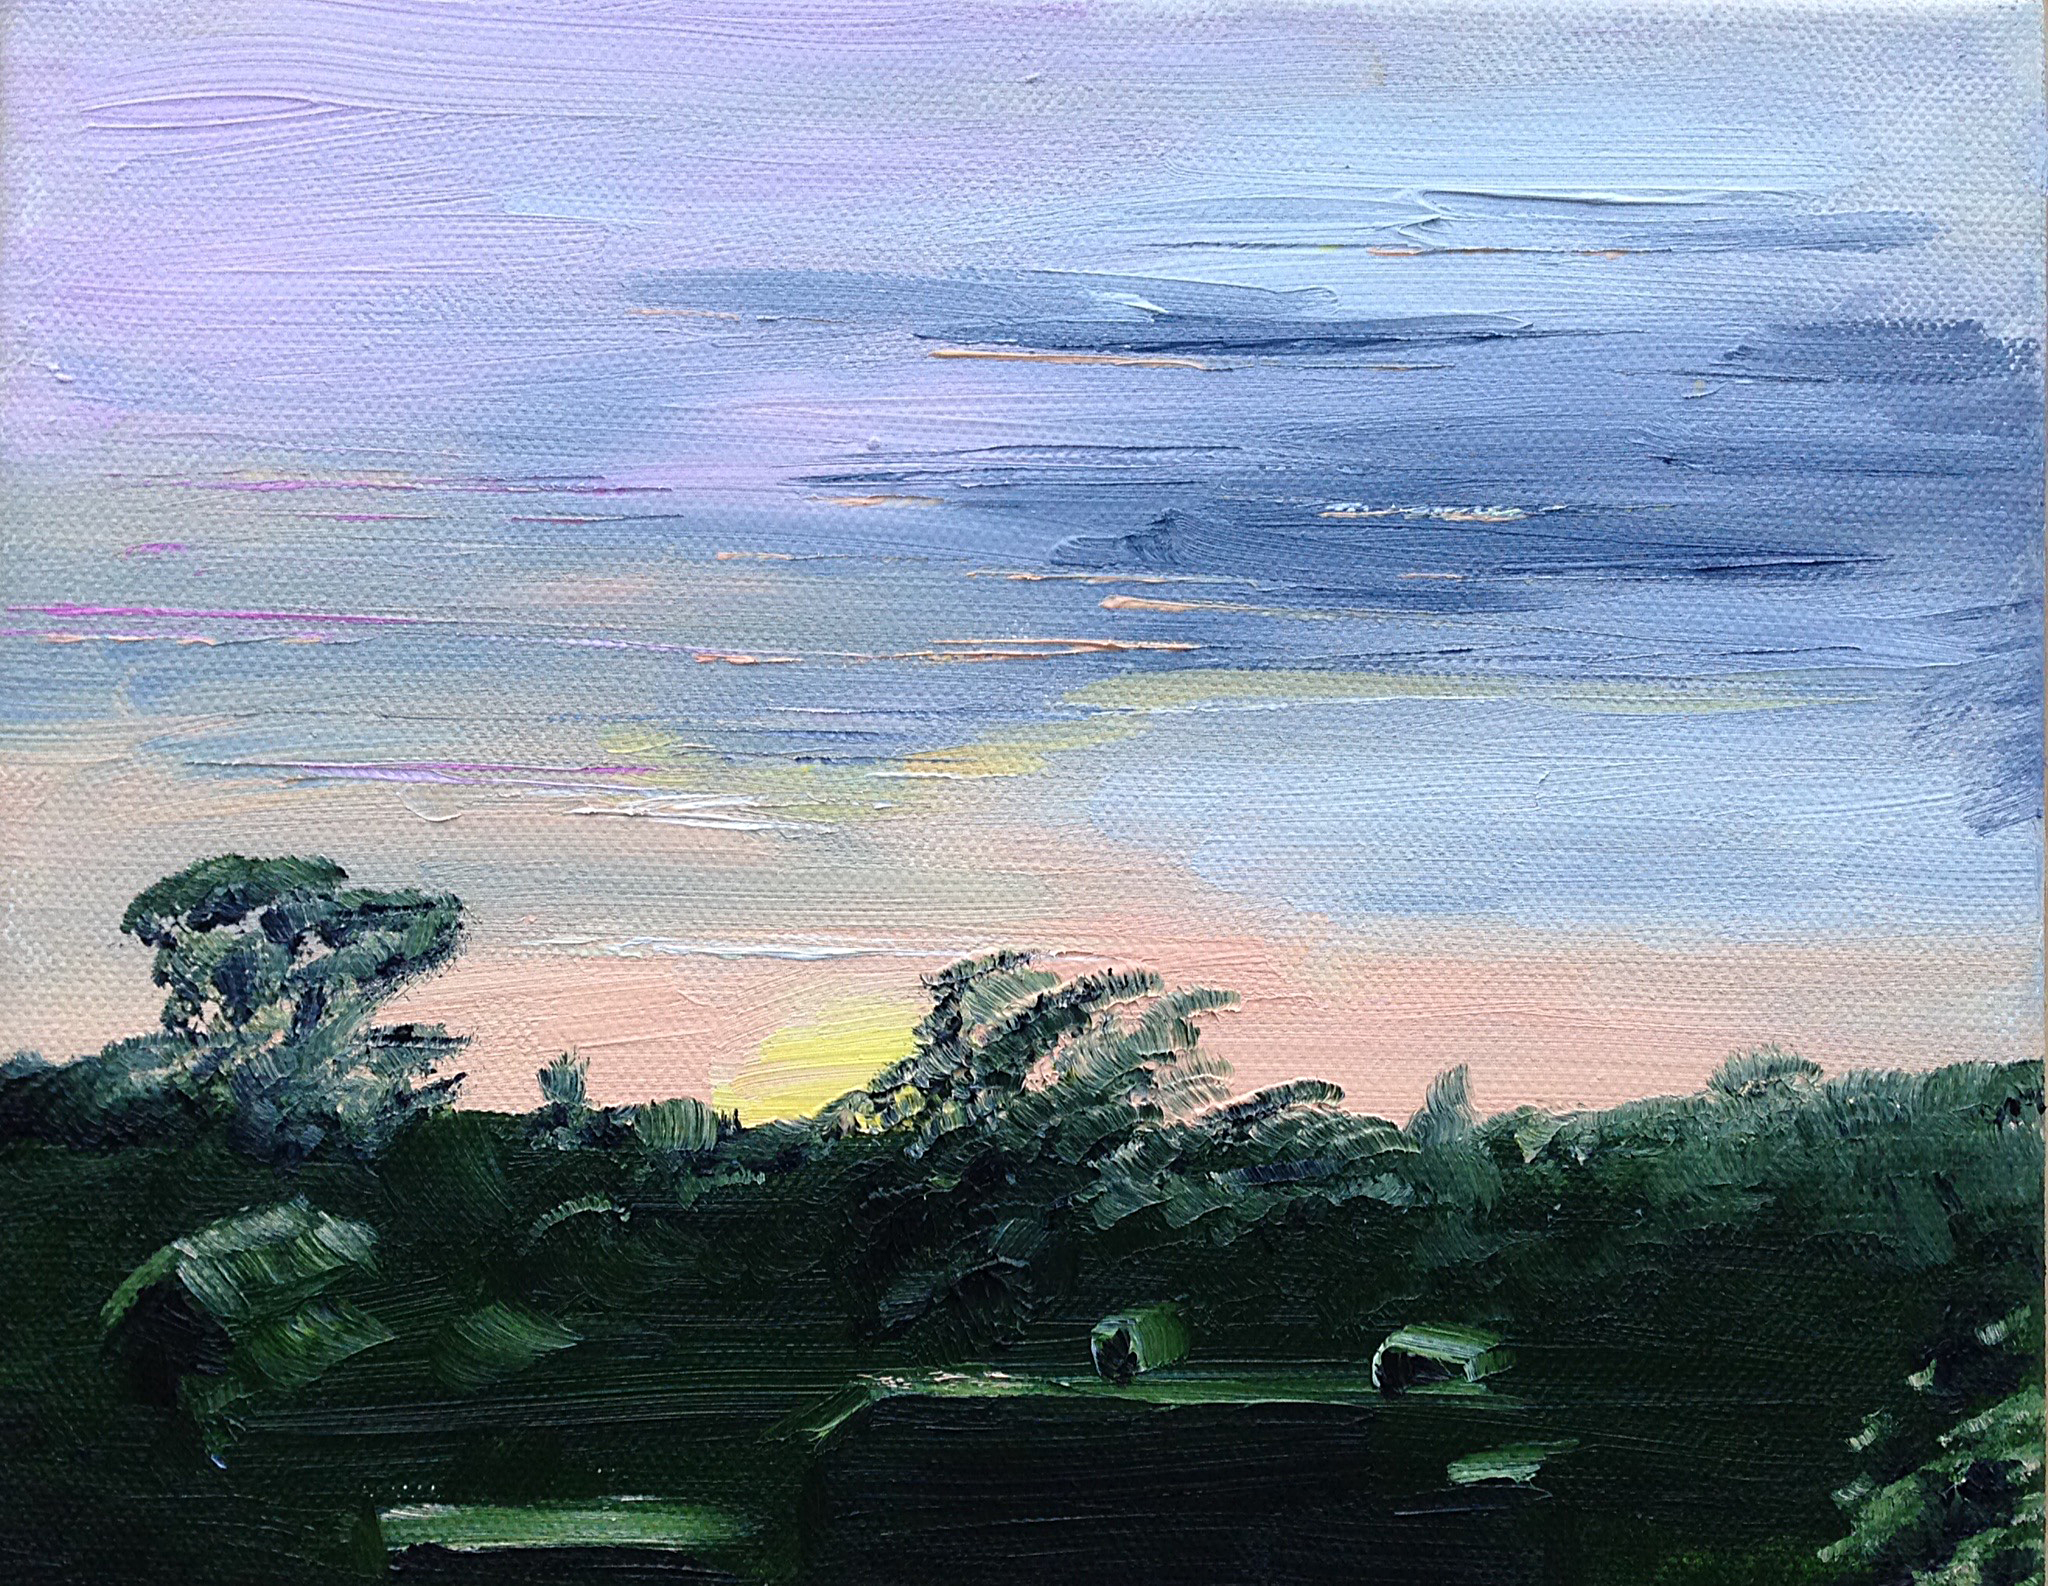 May 25, 5:44am, 2/30 8 x 10, oil on canvas.